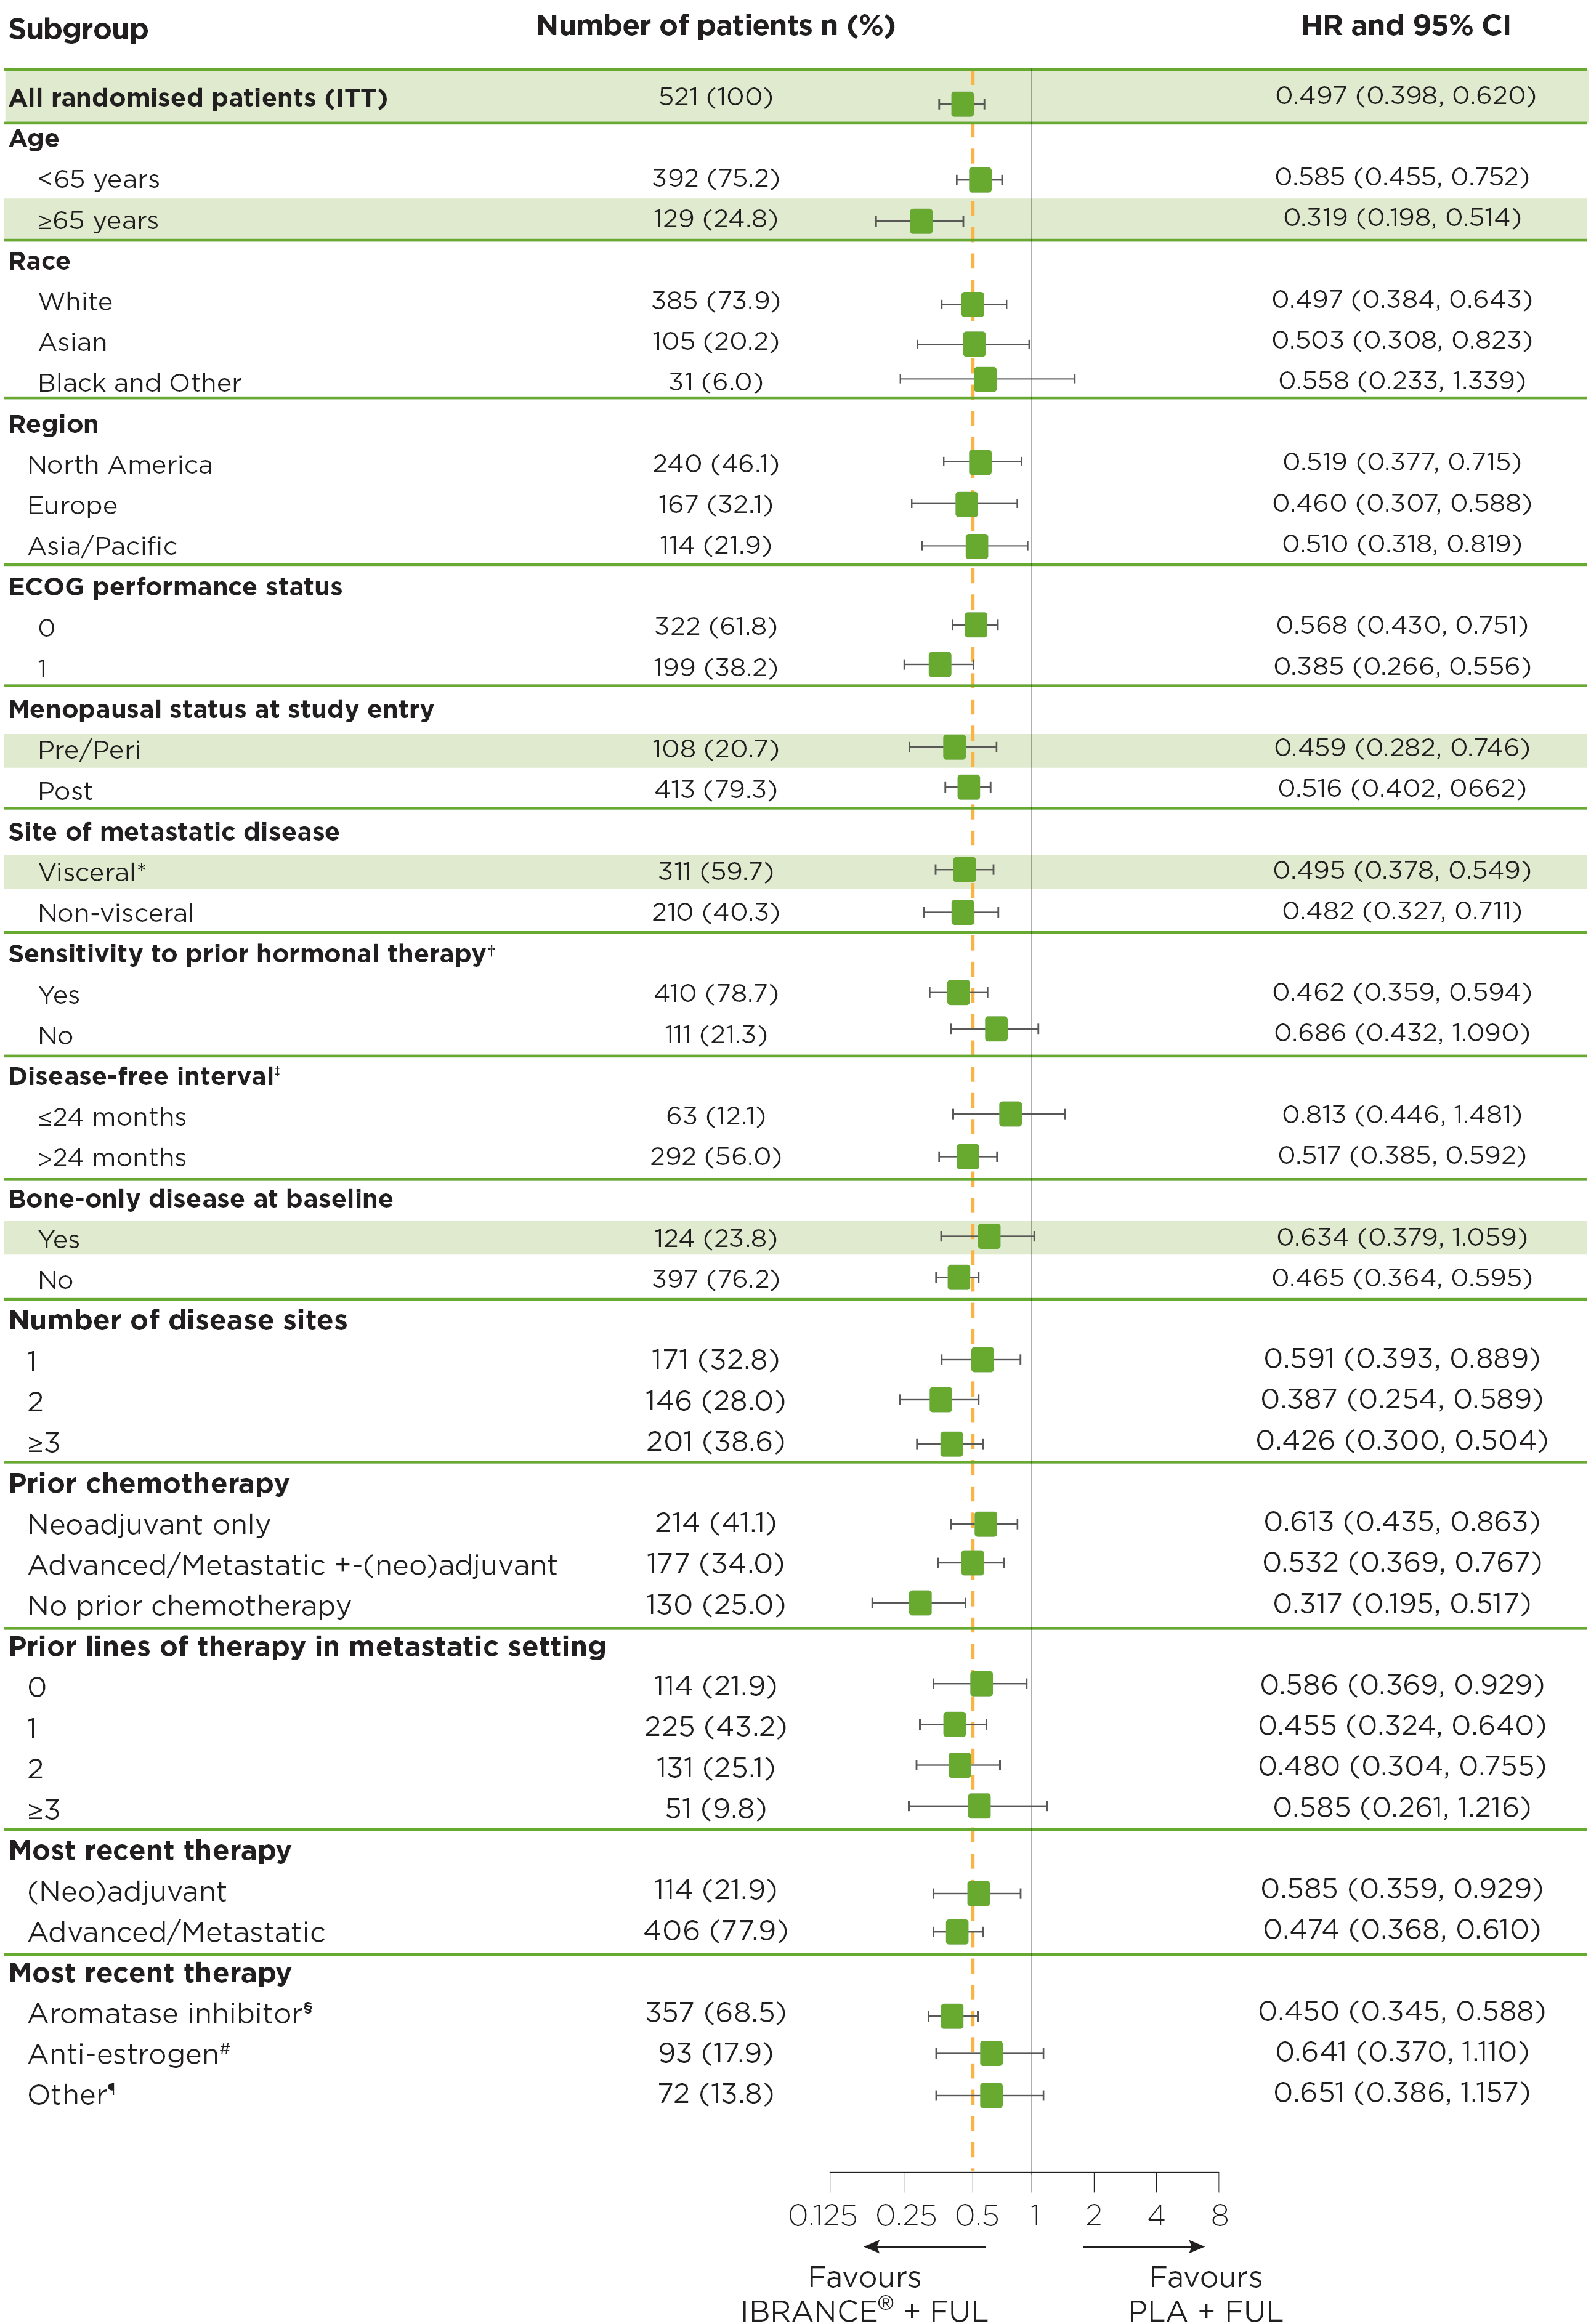 clinical-efficacy-across-patient-groups